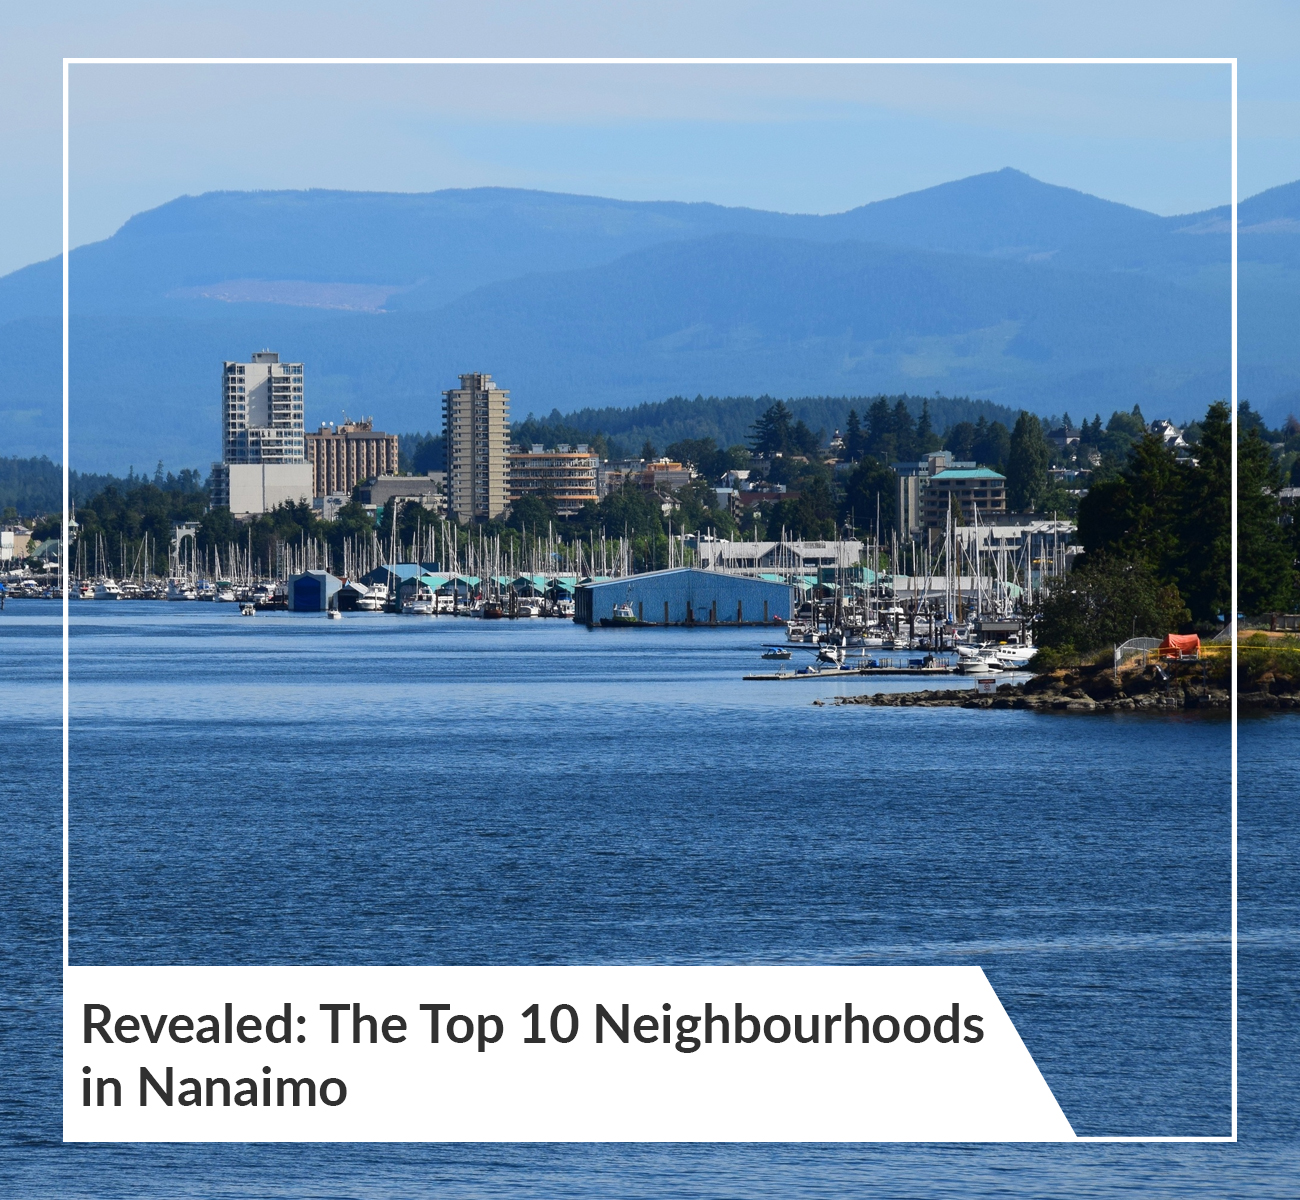 Revealed: The Top 10 Neighbourhoods in Nanaimo